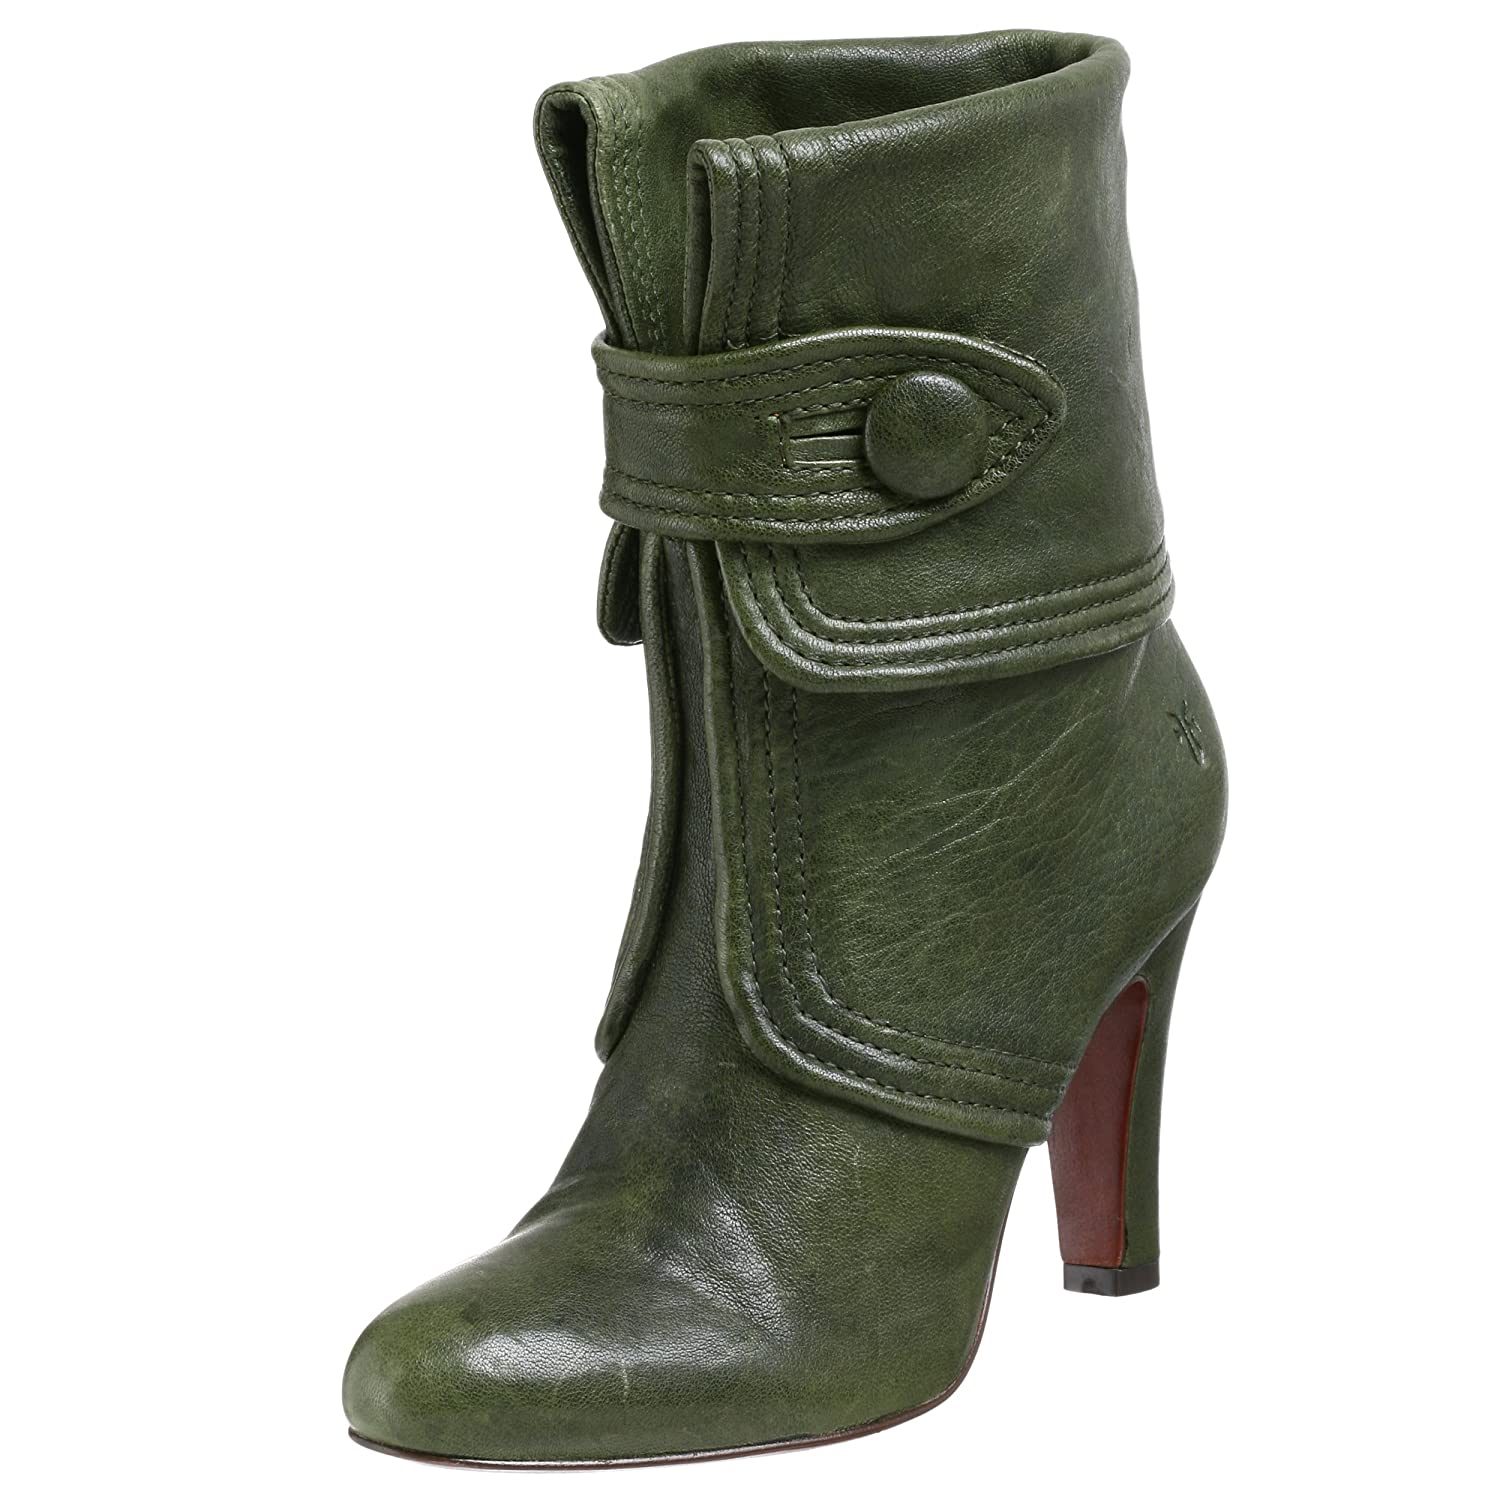 FRYE Ava Button Bootie - Free Overnight Shipping & Return Shipping: Endless.com from endless.com